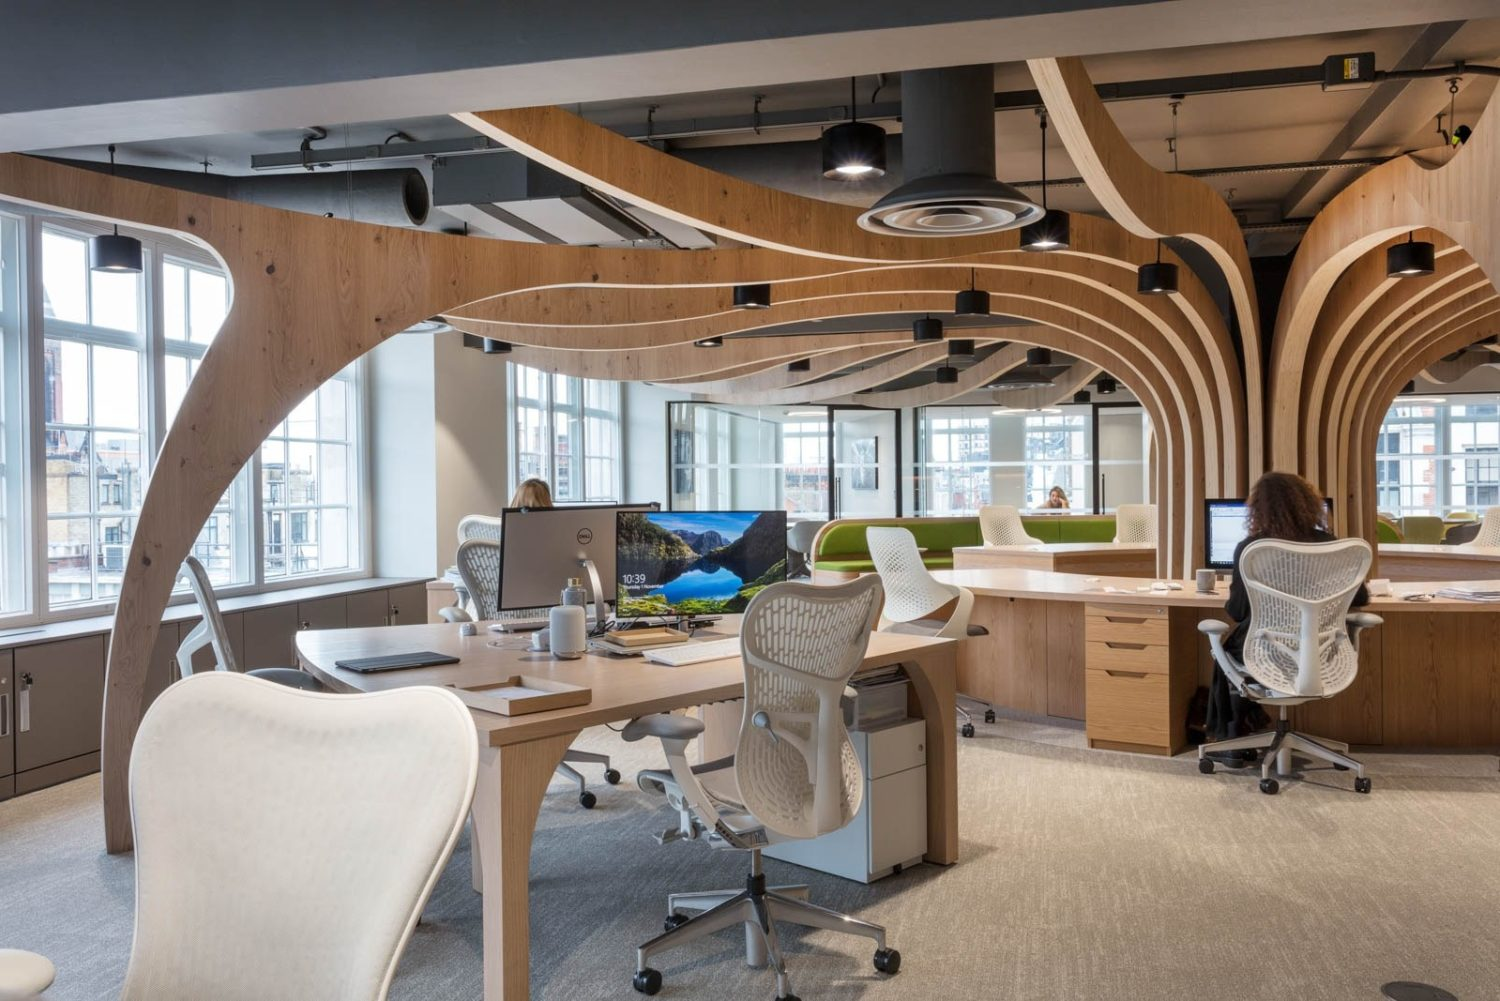 timber tree in biophilic office design